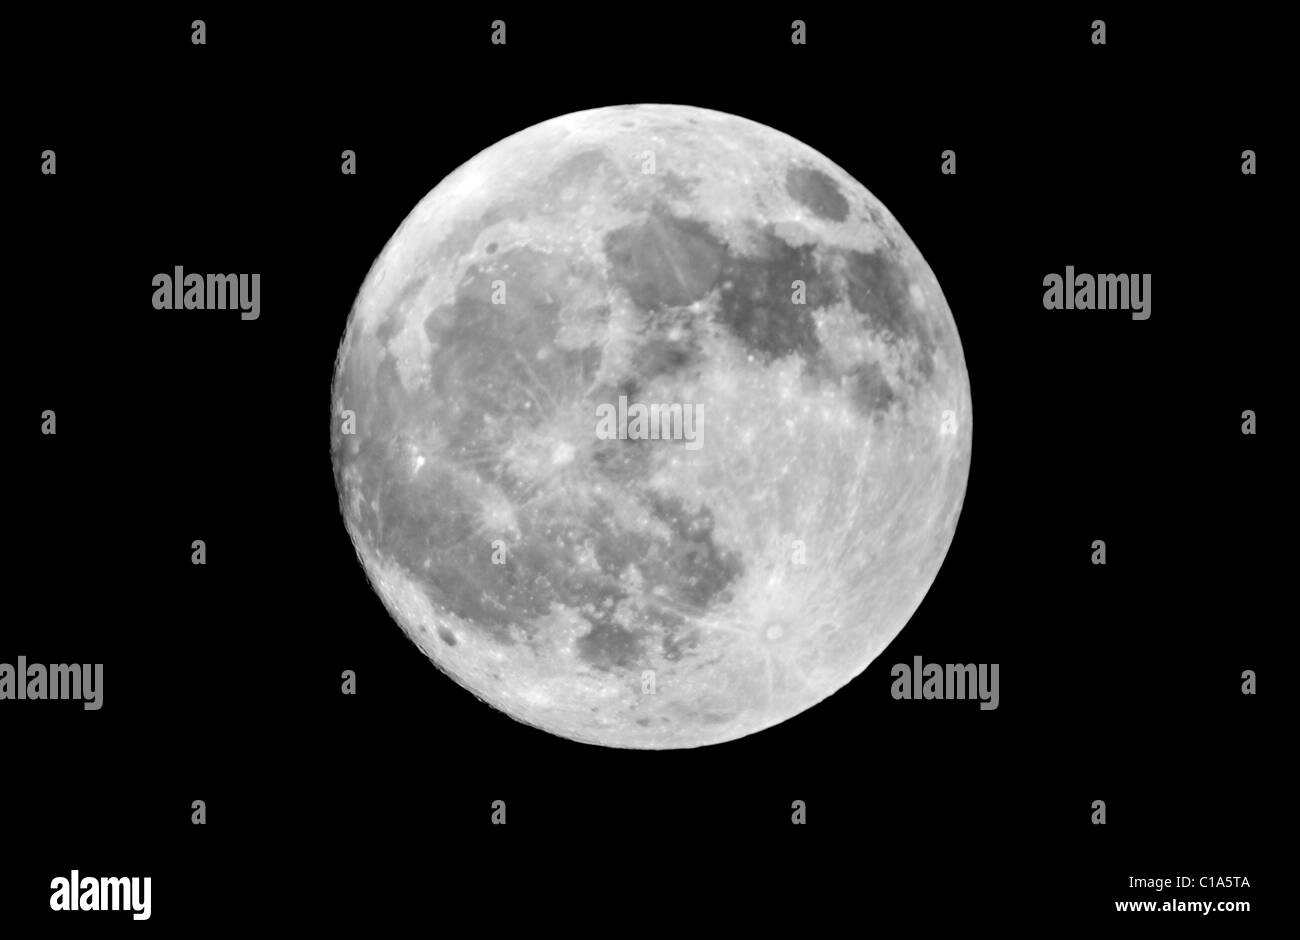 Actual photograph of the full moon taken at prime focus through an 8' Newtonian reflector telescope. Isolated - Stock Image